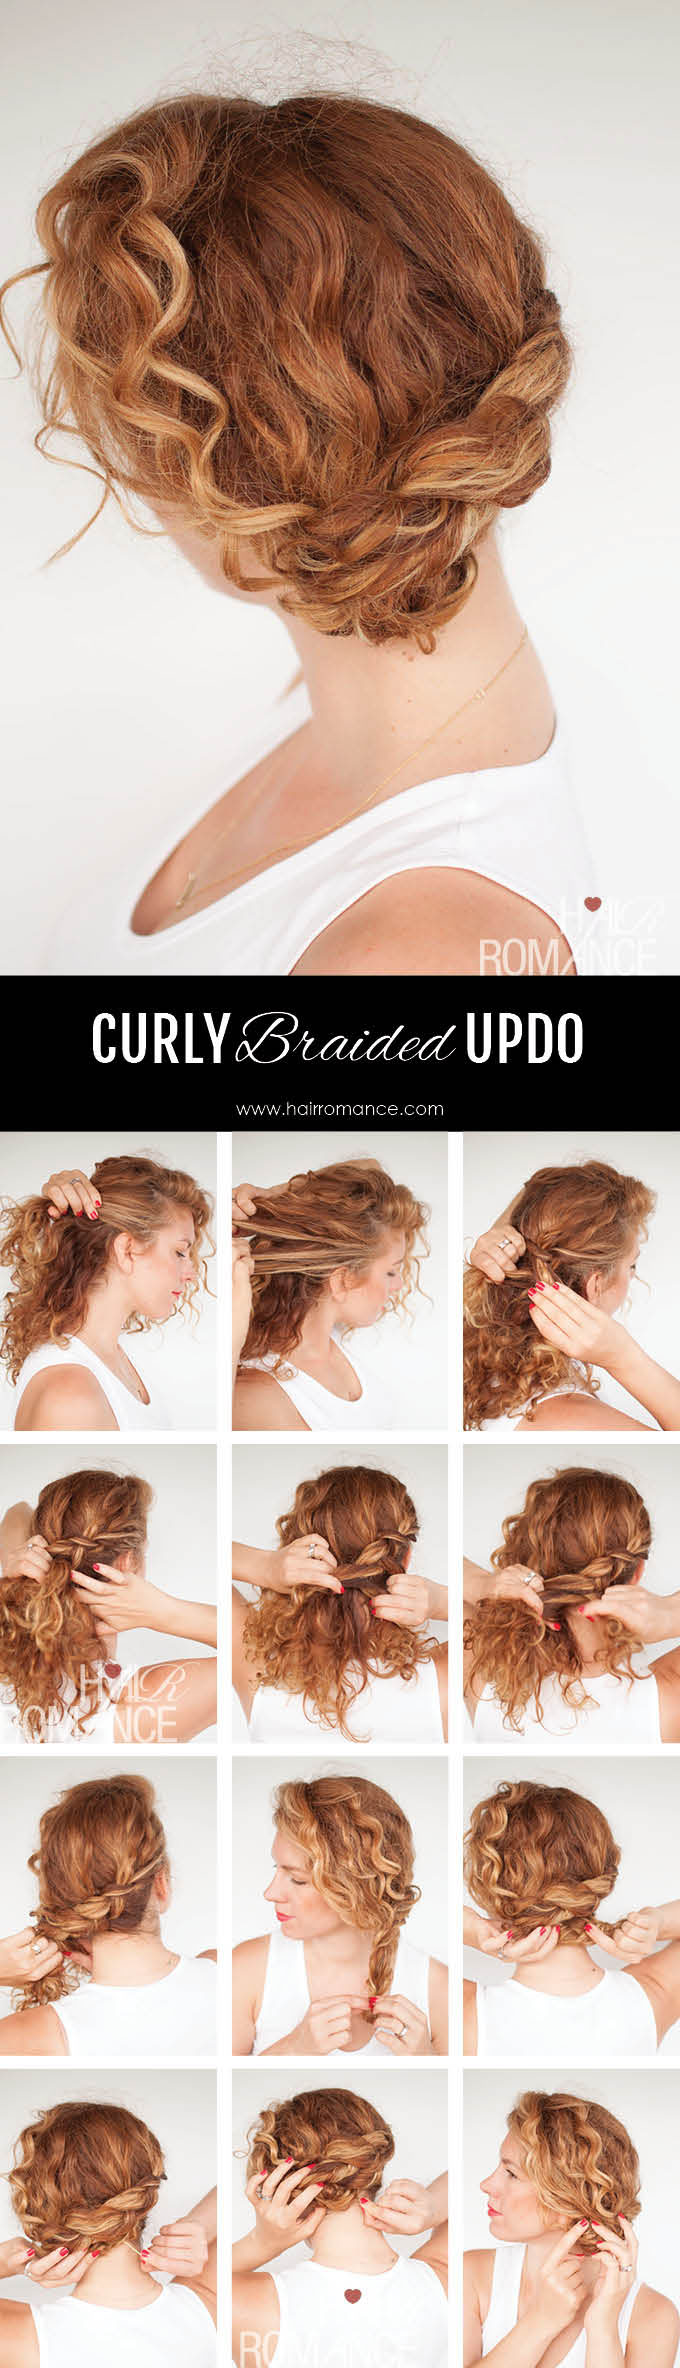 Quick Updo Hairstyles For Curly Hair Cute Up Hairstyles